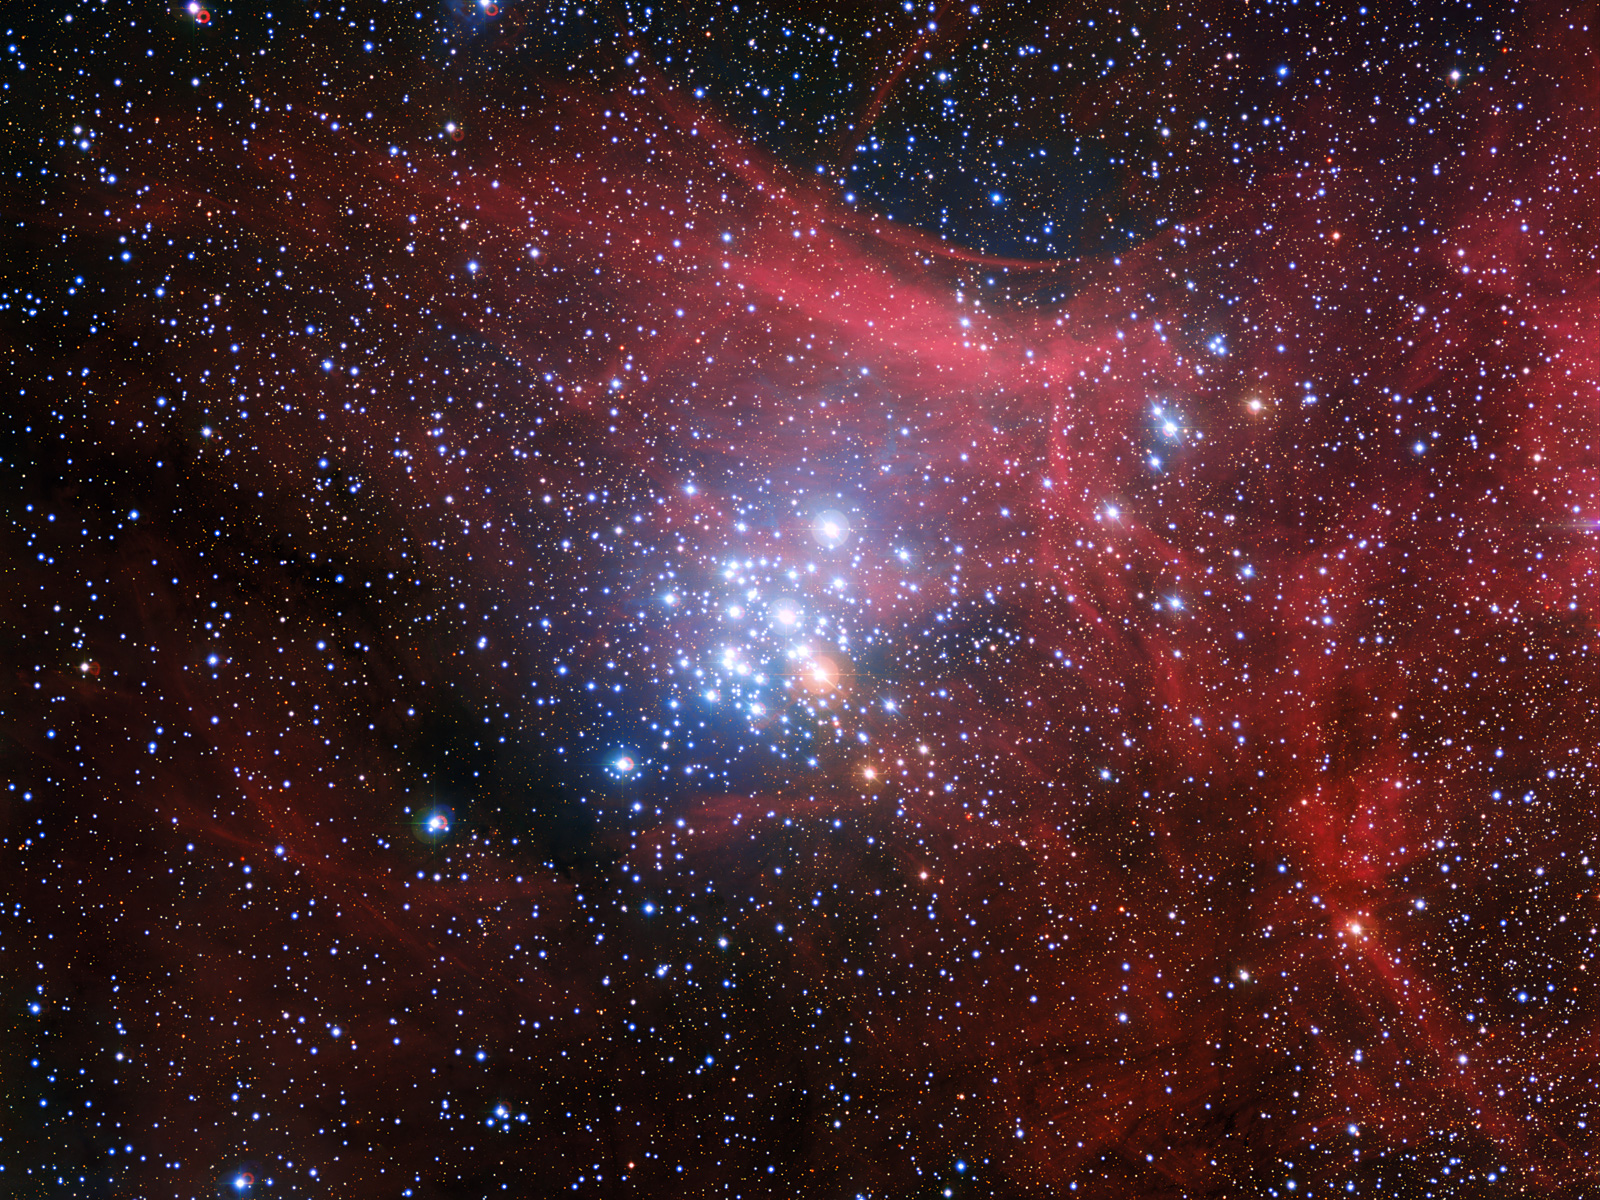 Star Cluster NGC 3293